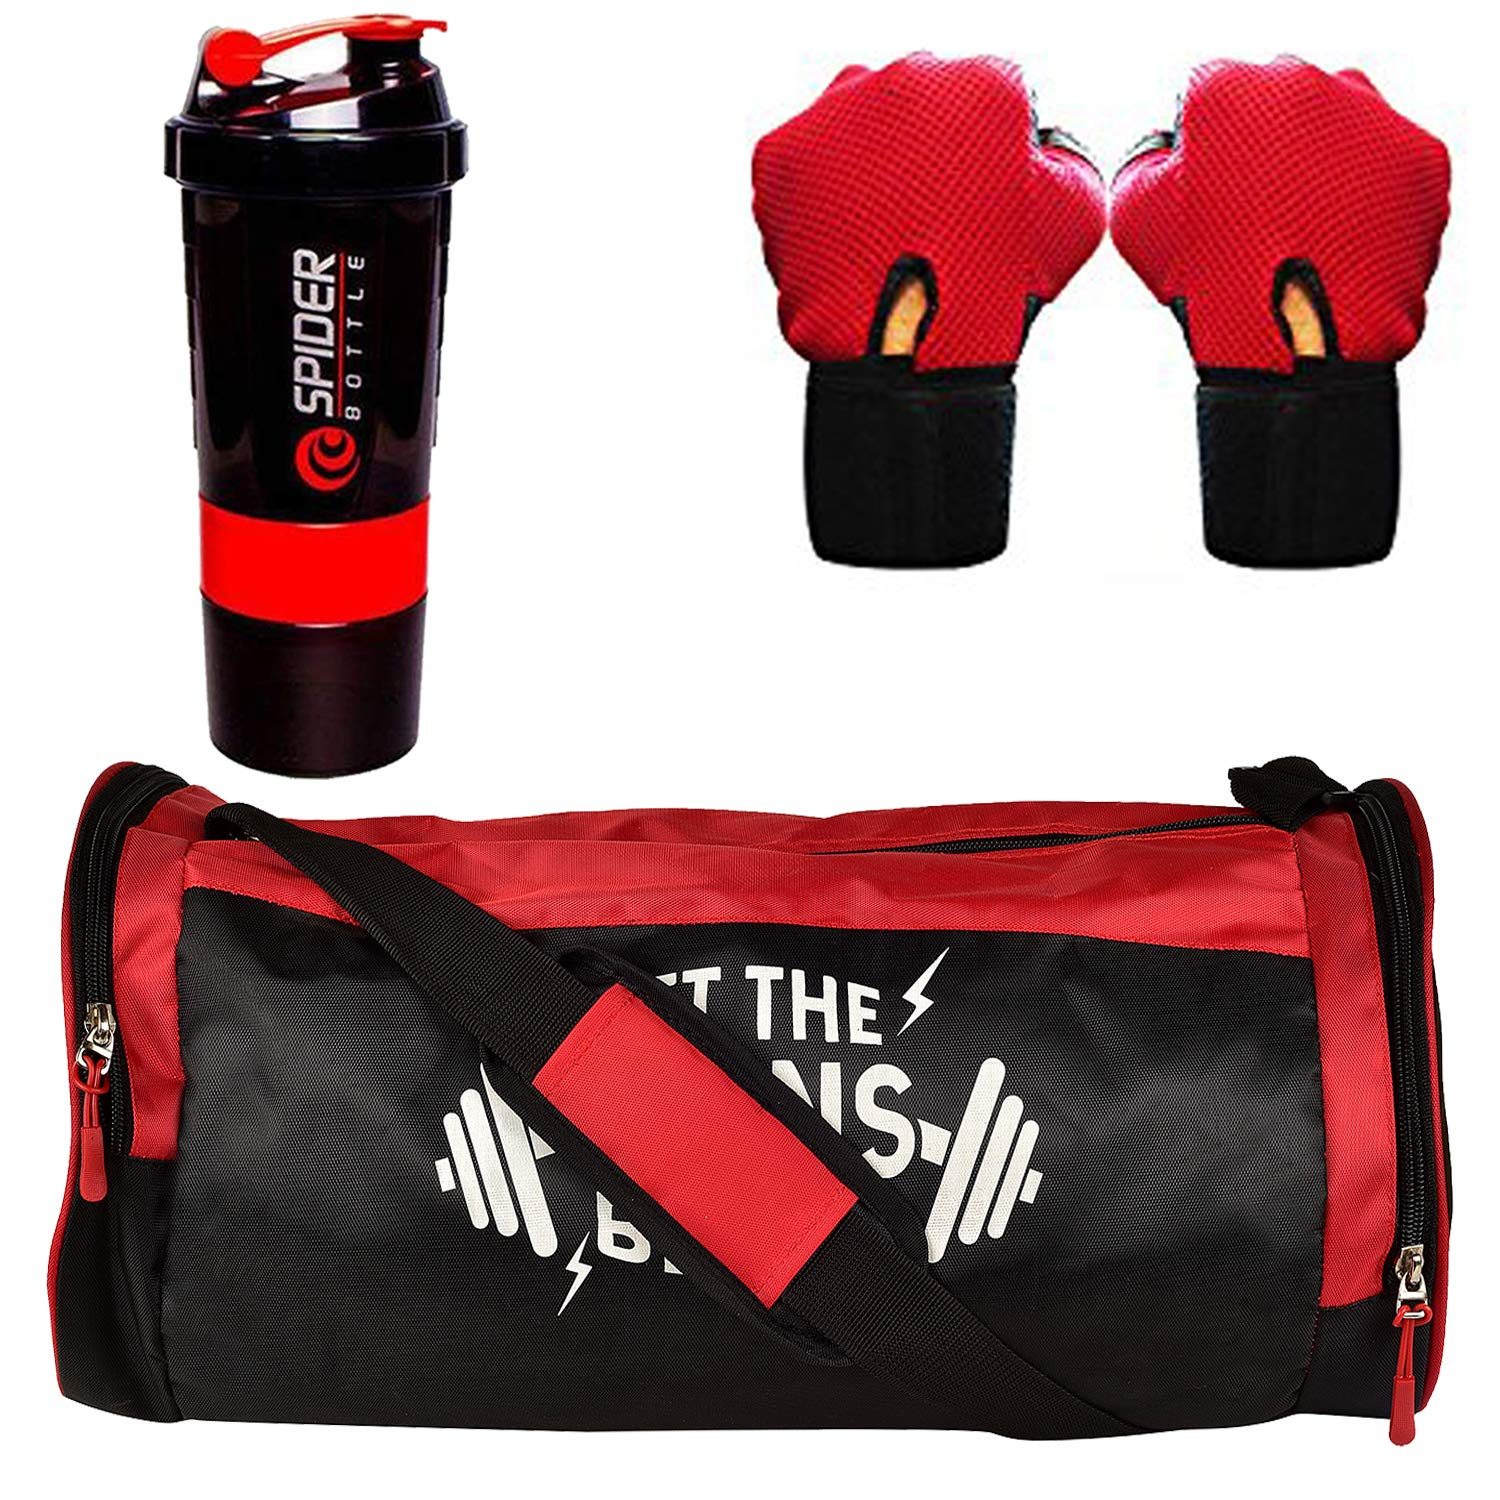 5 O' CLOCK SPORTS Combo of Polyester Red Gains Bag Gym/Fitness Kit/Combo/Gym Accessories for Men and Women product image